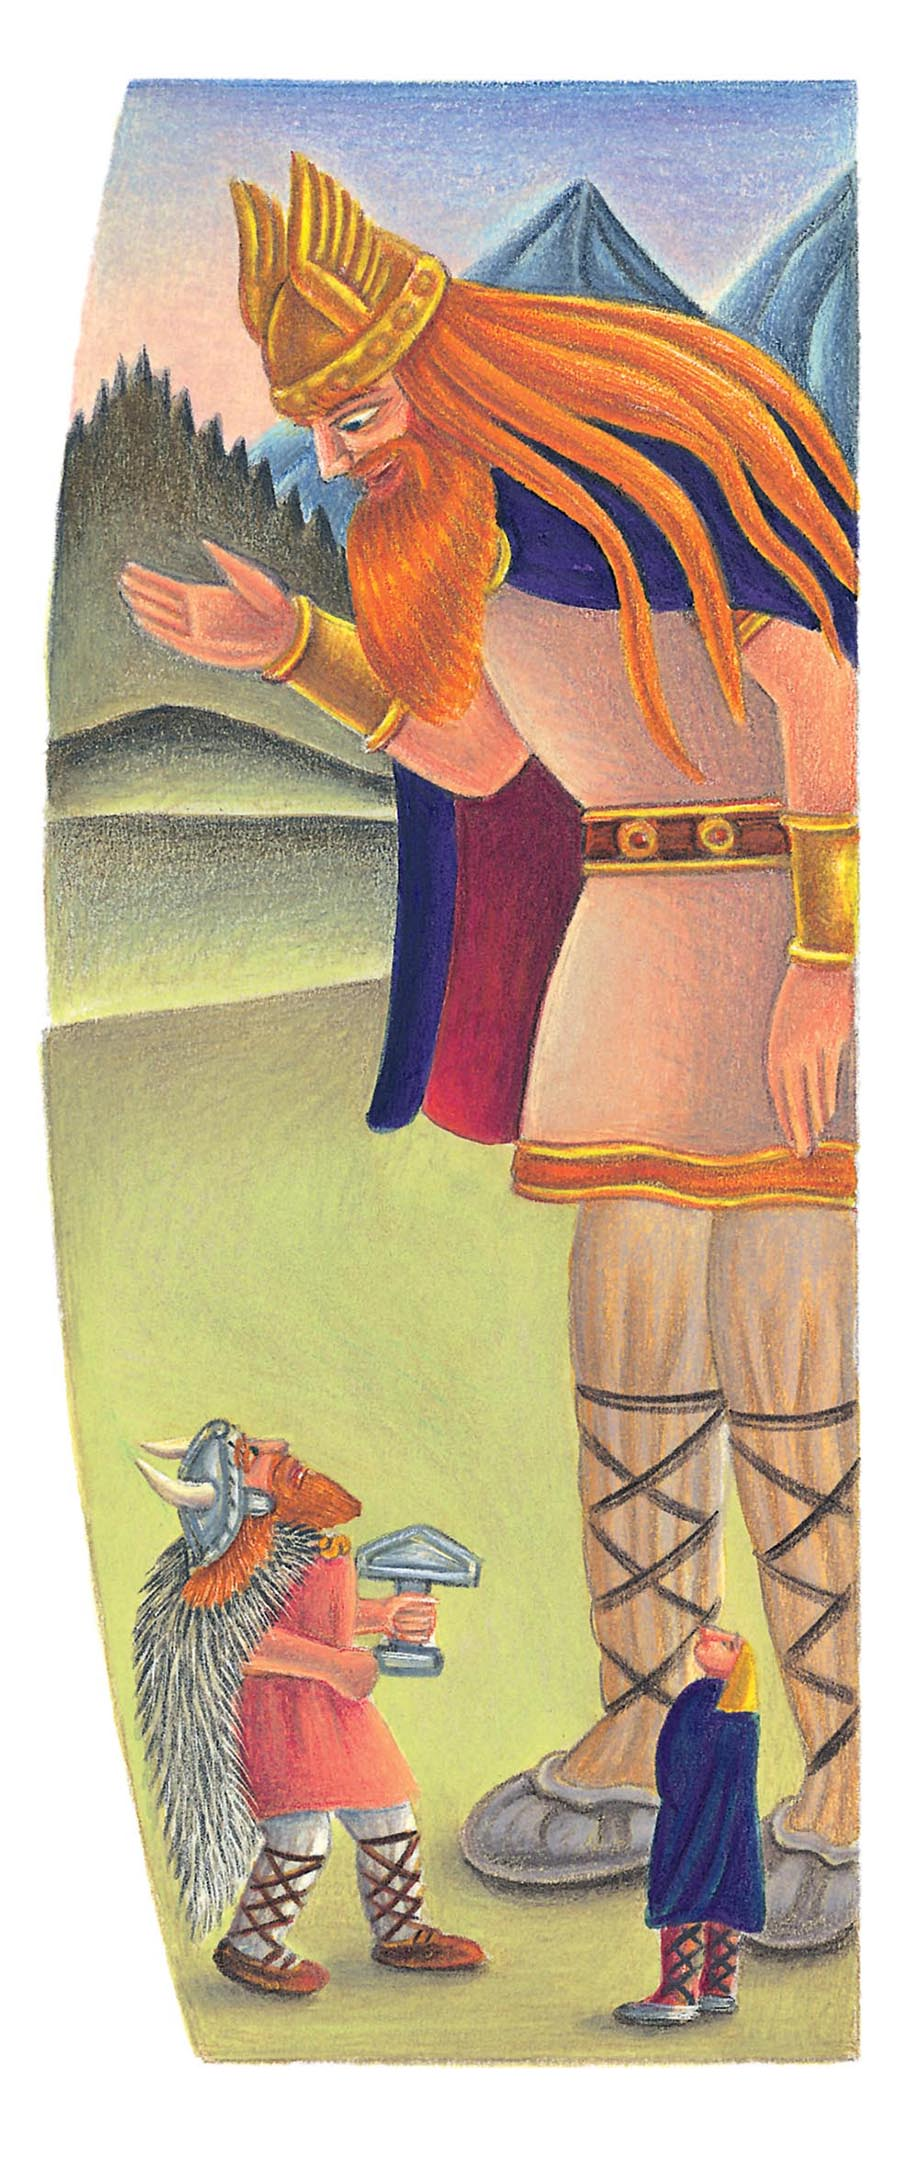 Giant Tales by Fiona Waters Gallery. Illustration 43 'Thor looked at Utgard-Loki in great bewilderment' (Pixel dimensions available w821 x h1983)